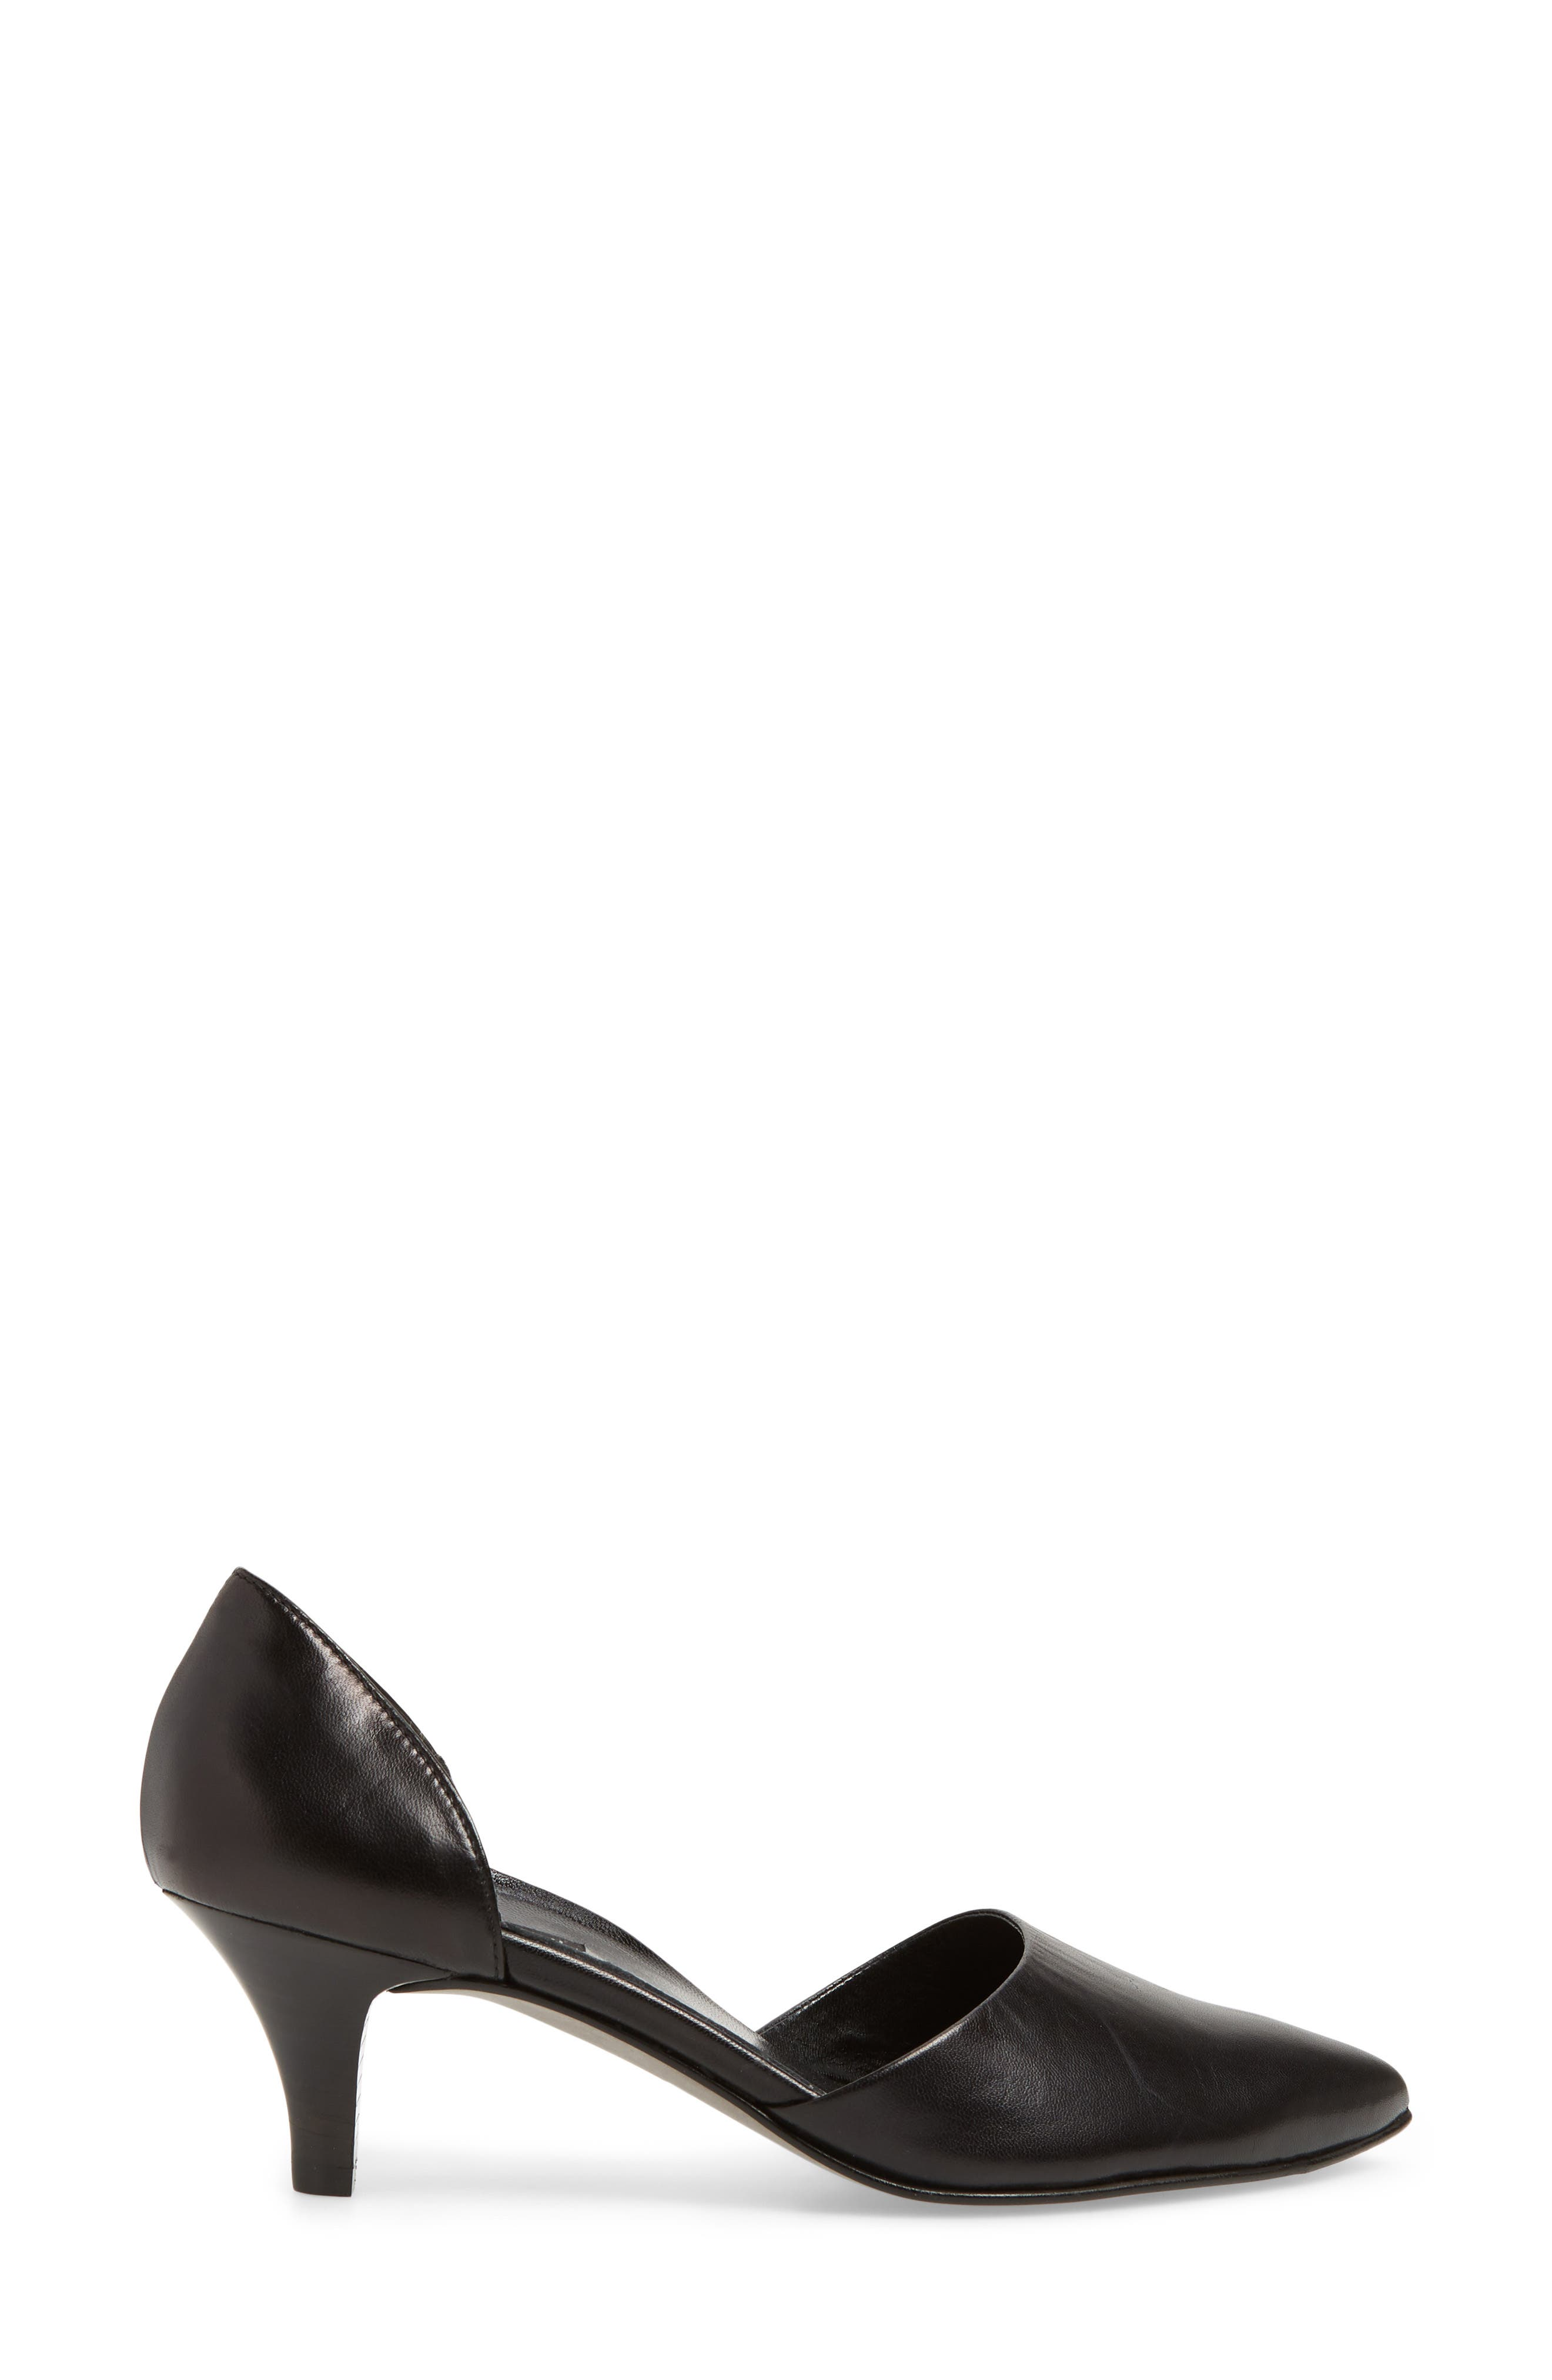 Shey Pointy Toe Pump,                             Alternate thumbnail 3, color,                             BLACK LEATHER